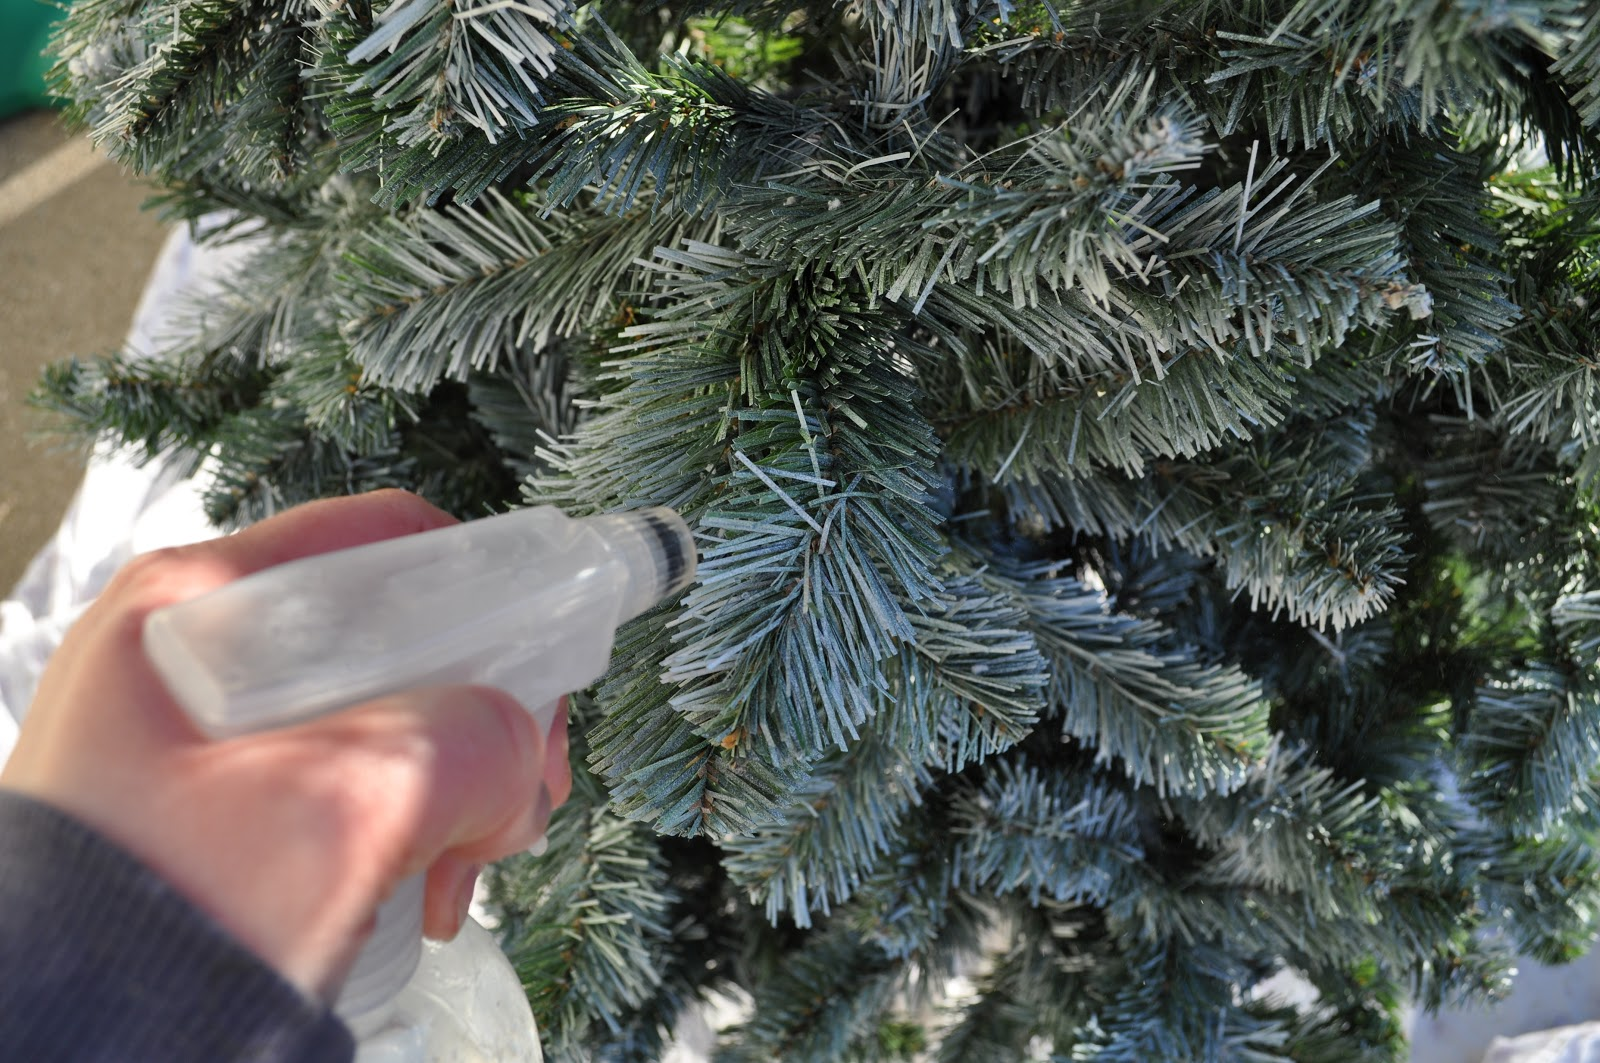 8 tips to make your tree last longer this christmas the handy mano 8 christmas tree tips everyone should know the handy mano manomano mano diy do it yourself solutioingenieria Choice Image